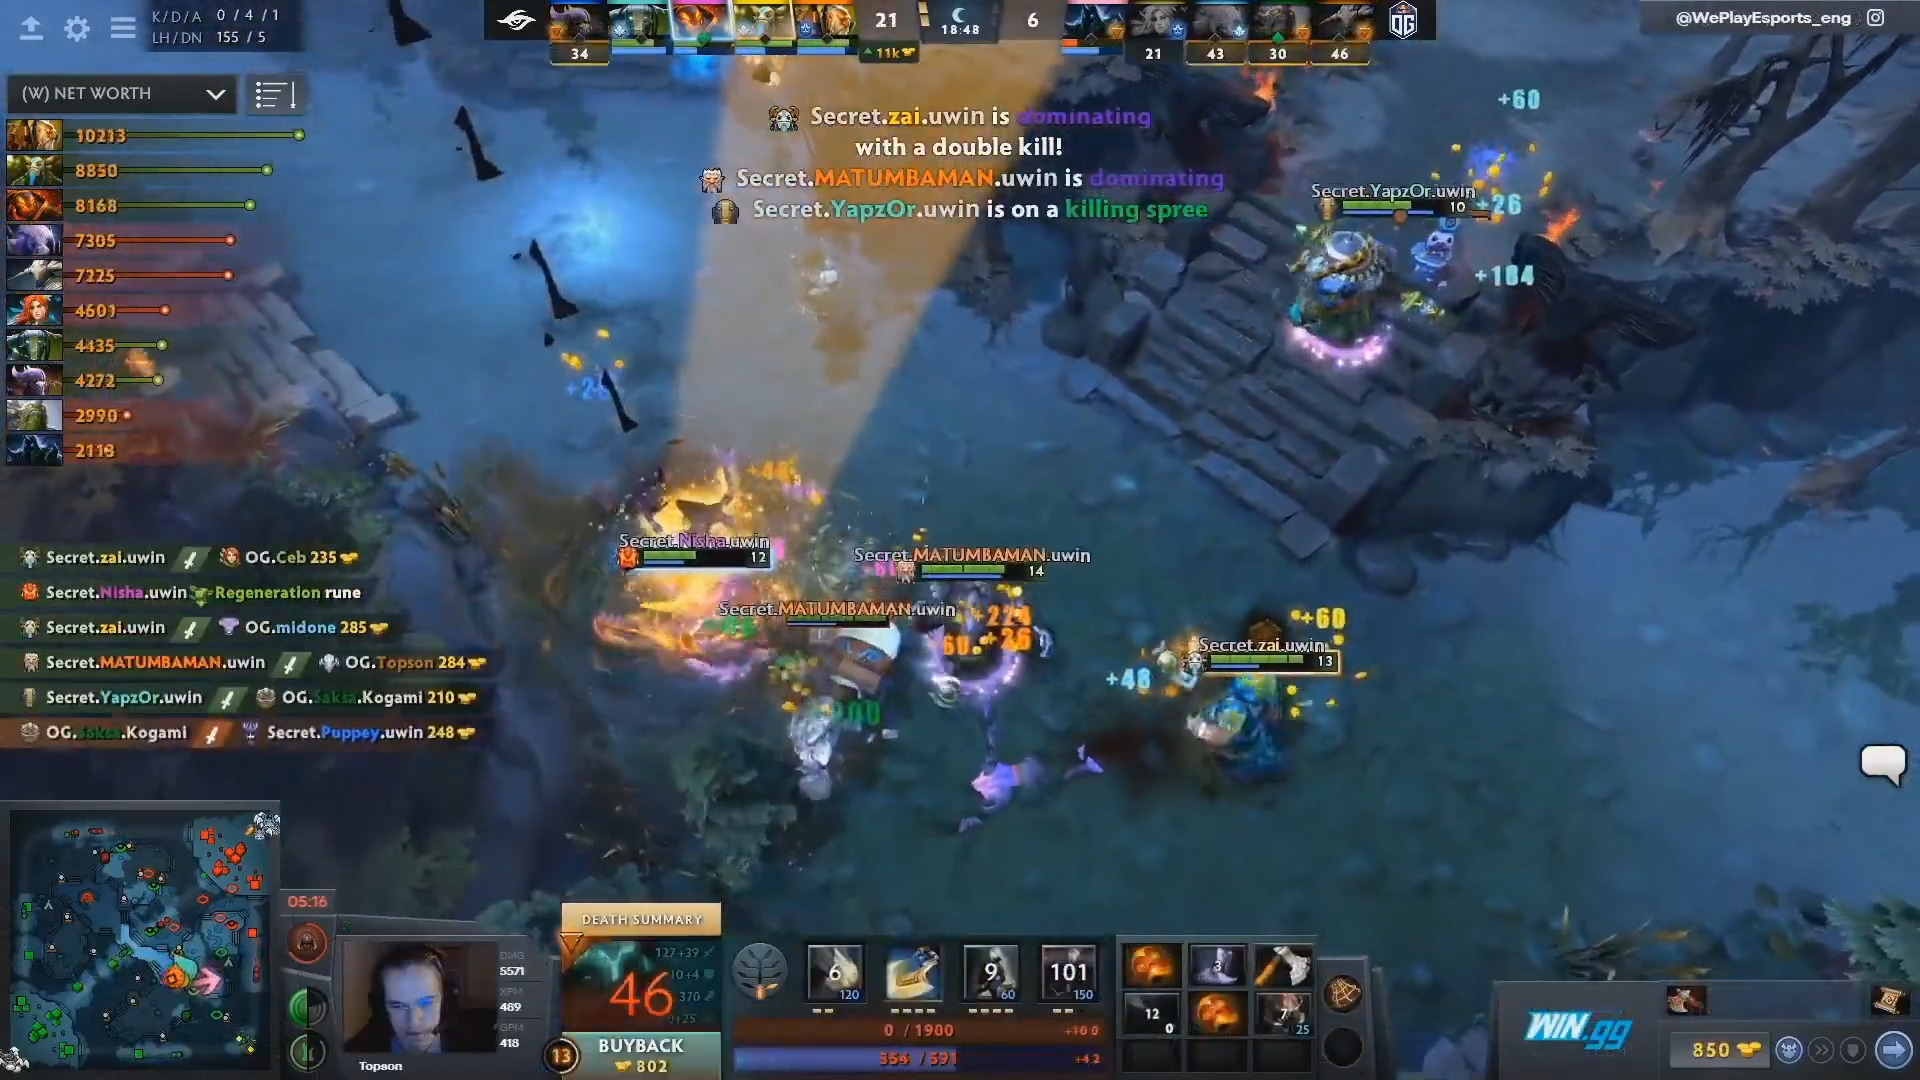 The Domination Continues As Team Secret Sweeps OG In The OMEGA League Finals